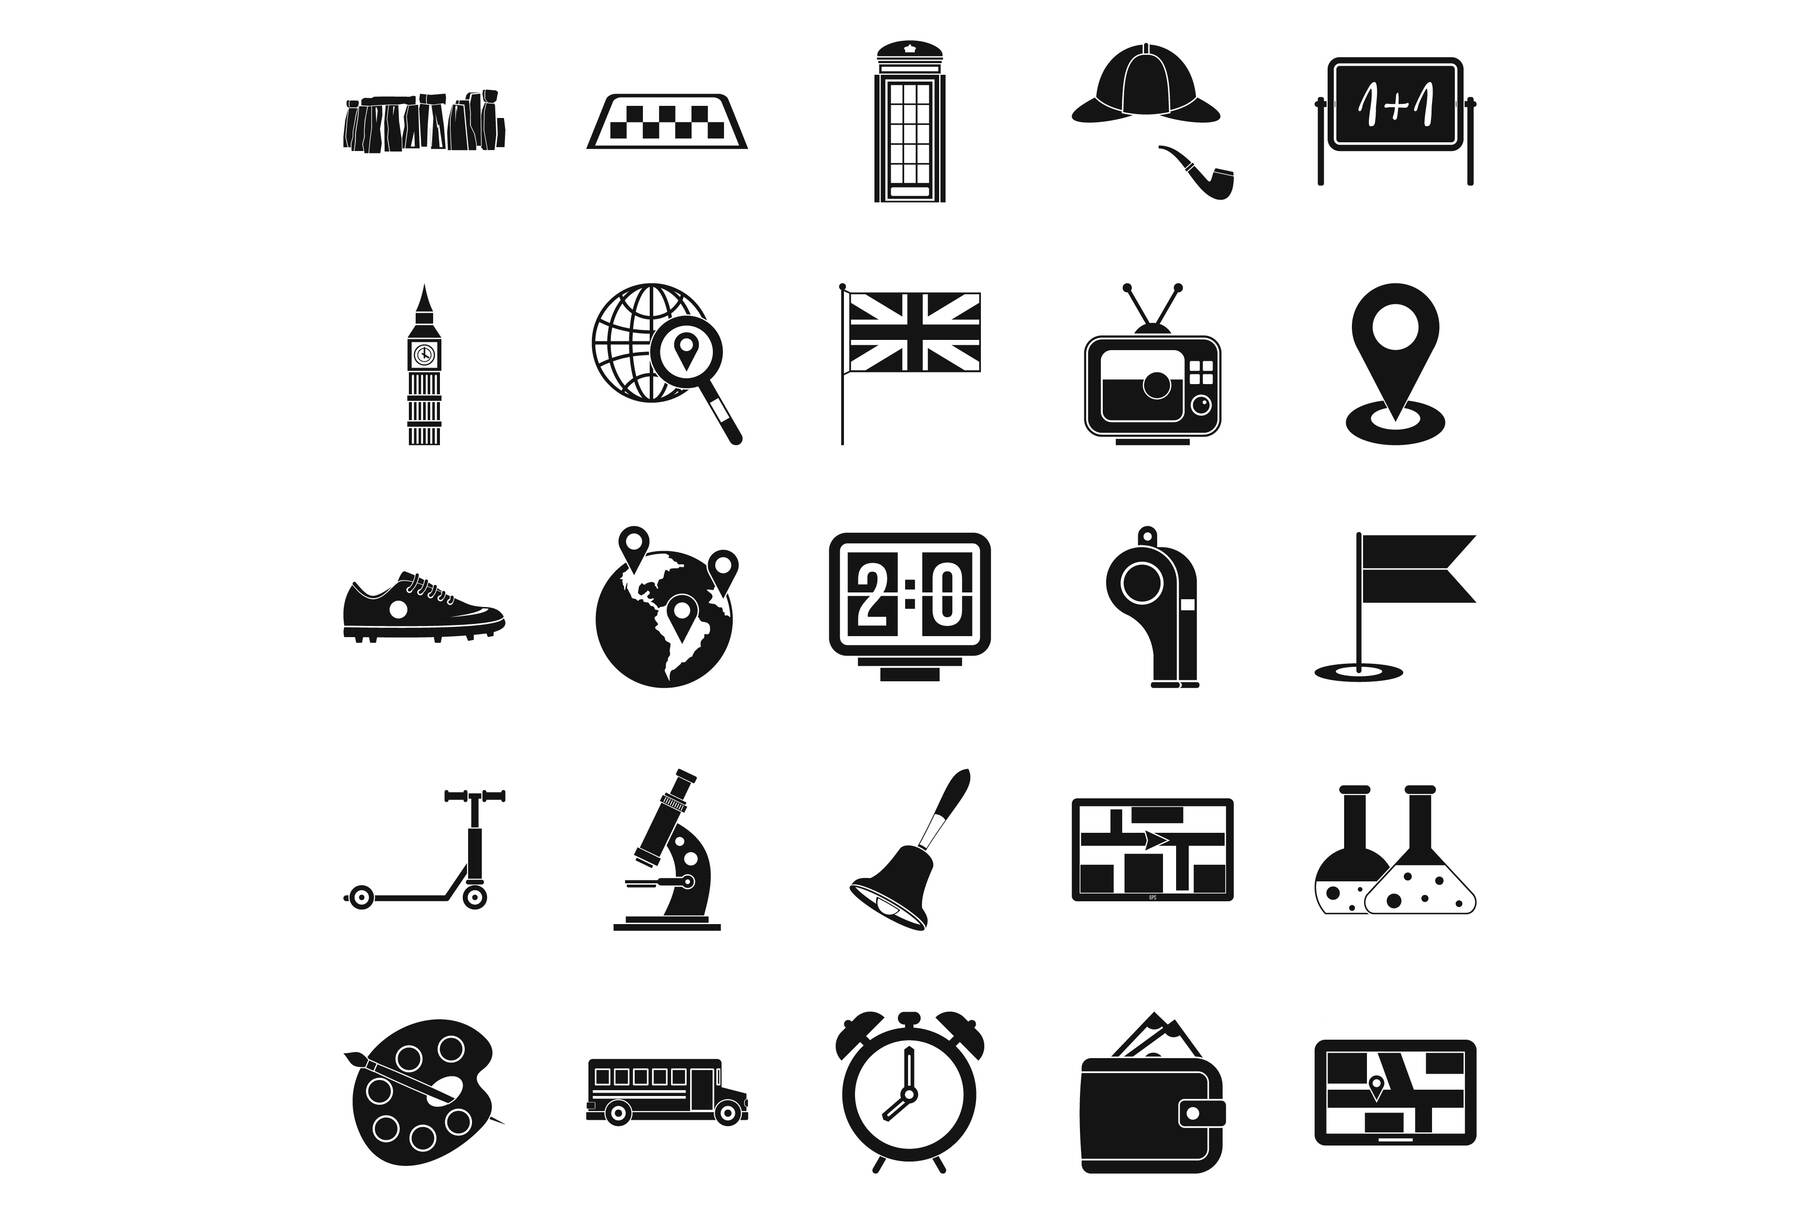 Bus icons set, simple style example image 1